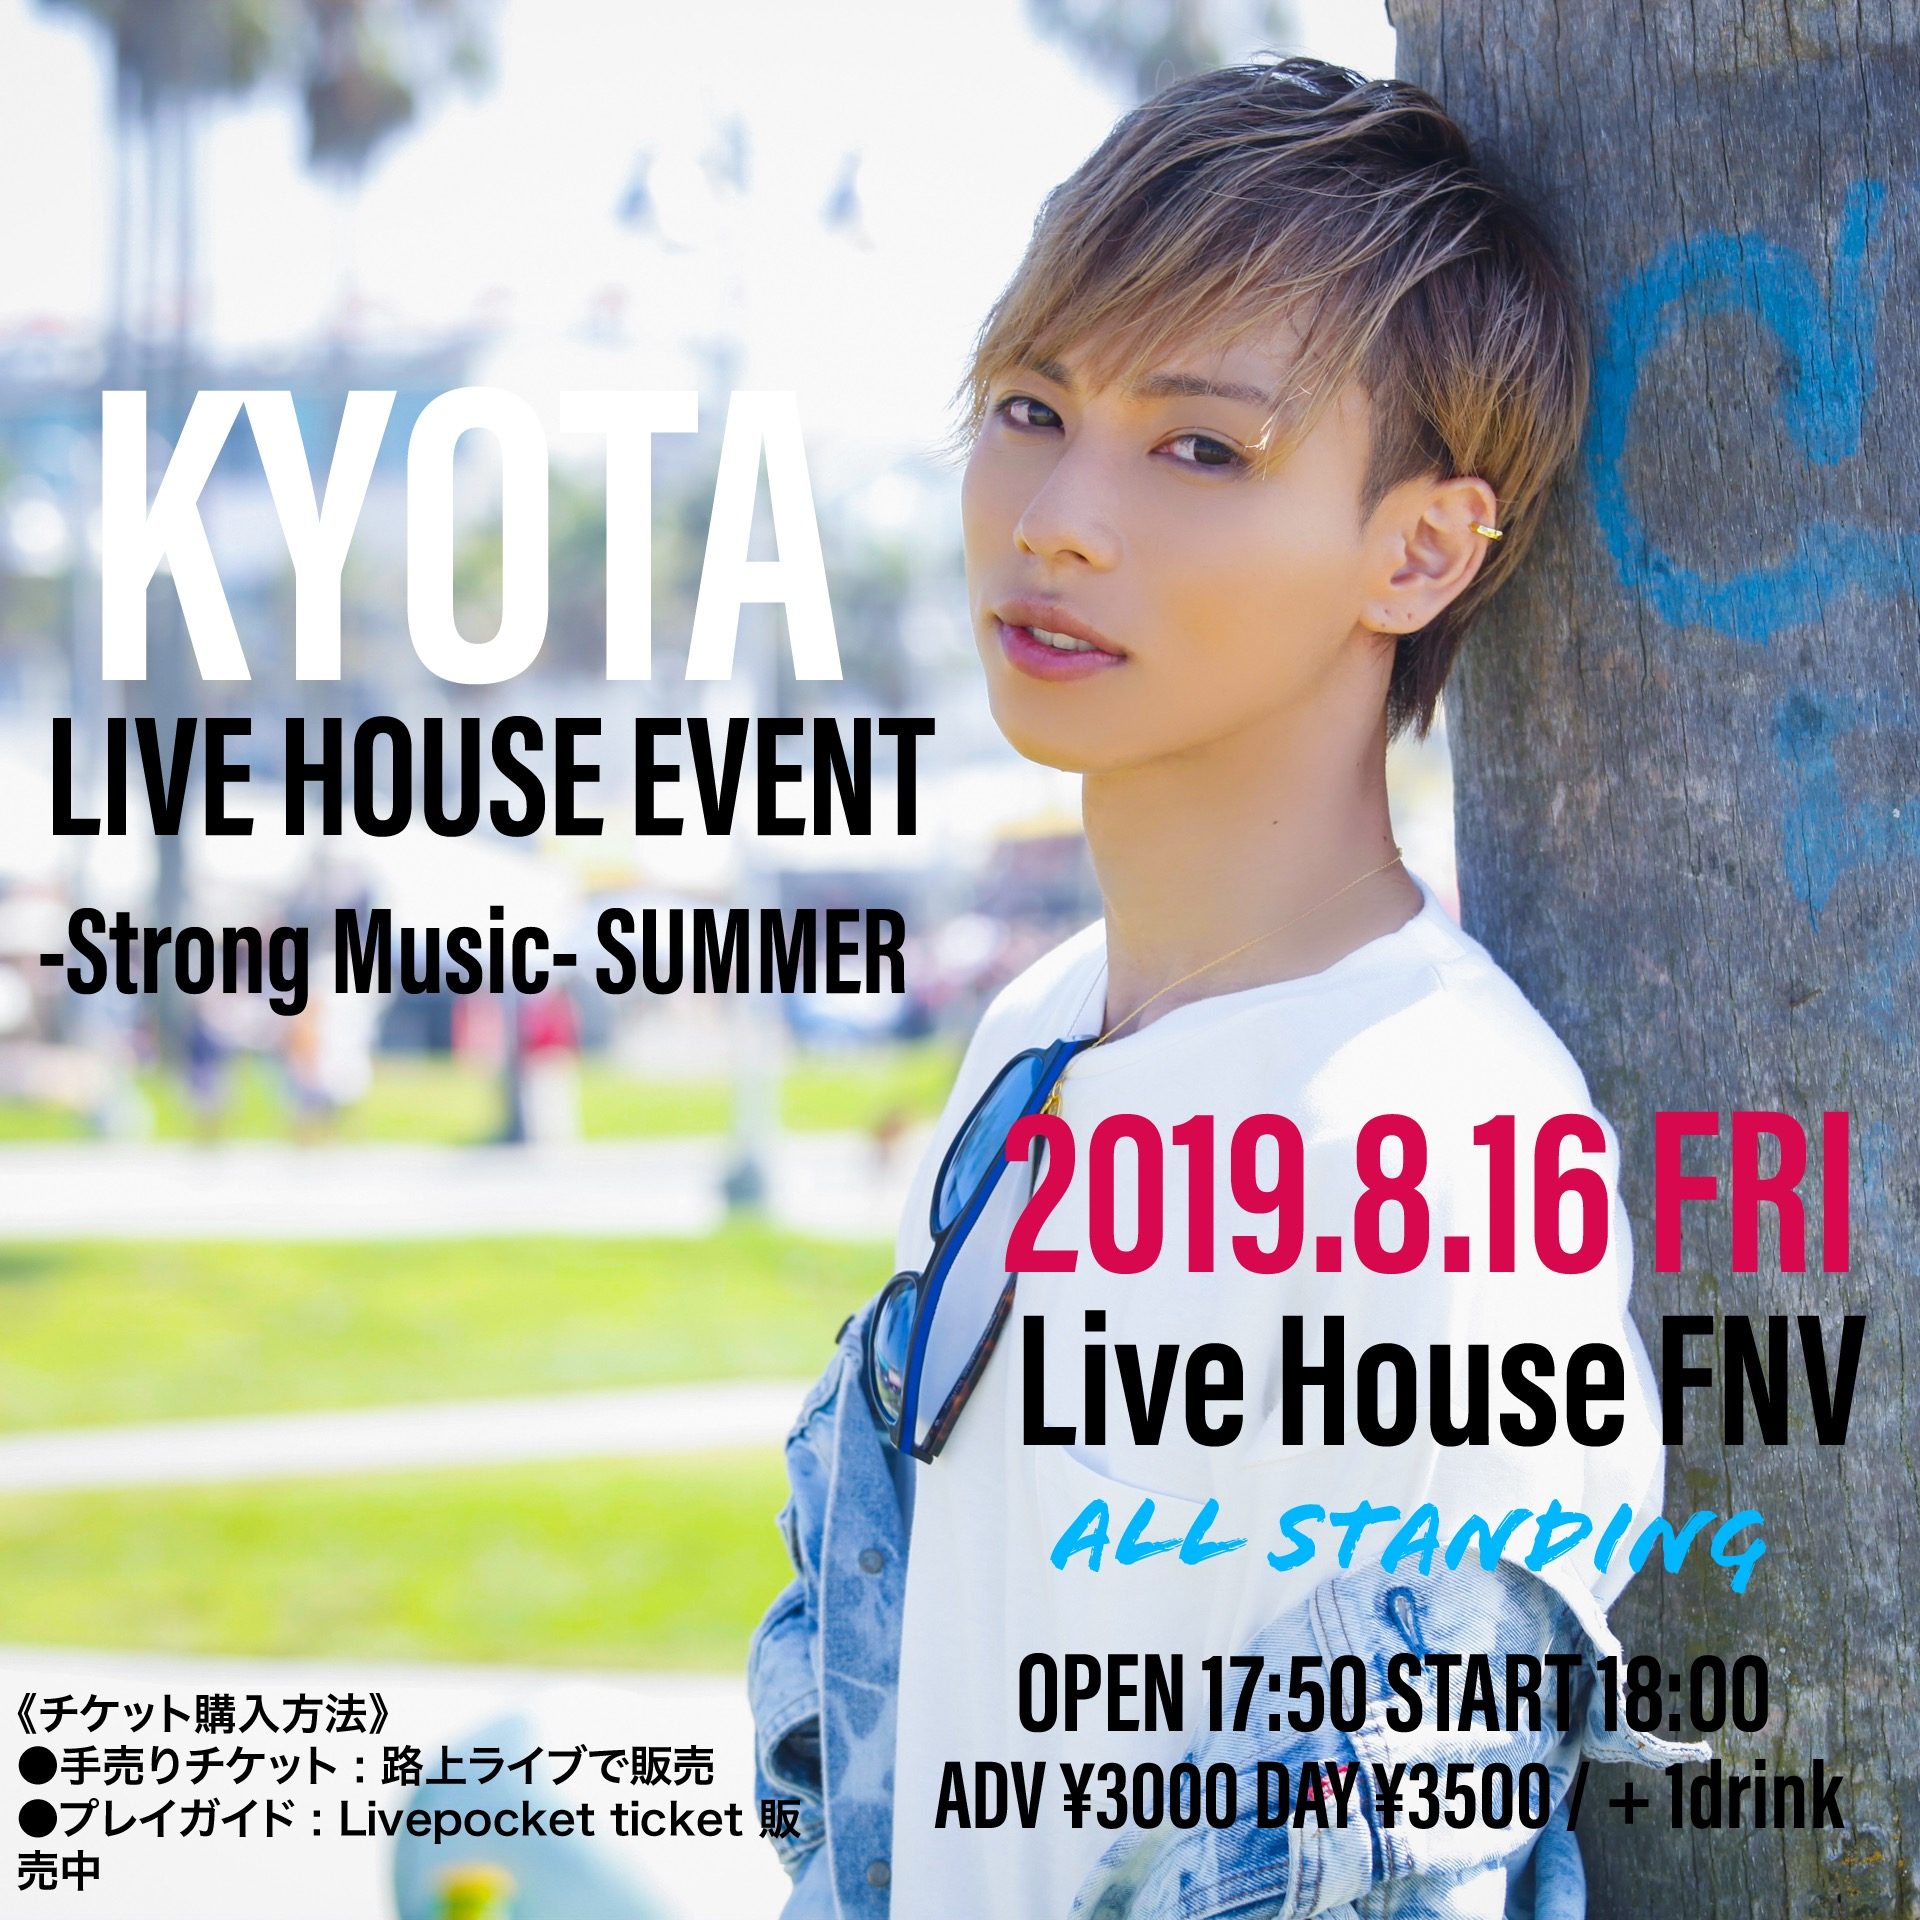 KYOTA LIVE HOUSE EVENT -Strong Music- SUMMER